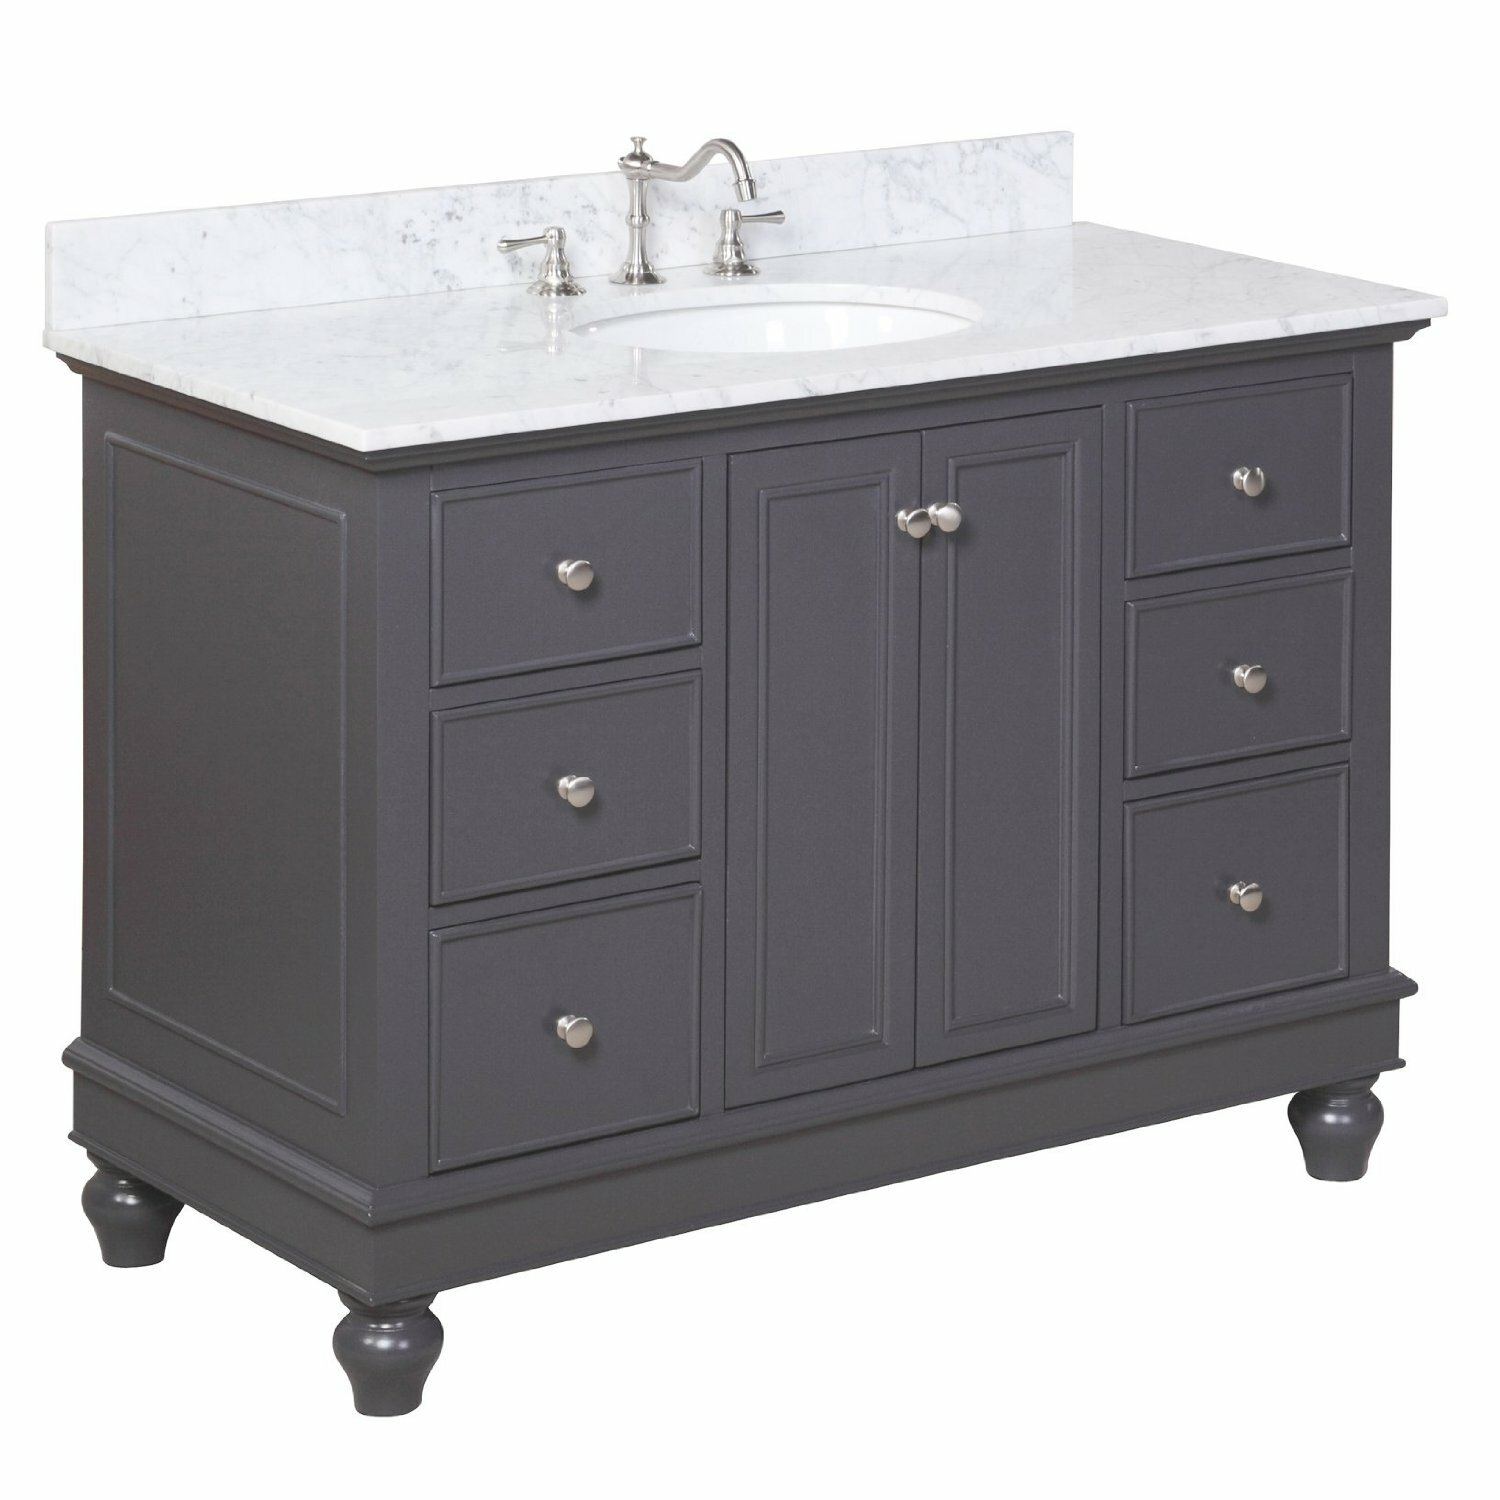 Kbc bella 48 single bathroom vanity set reviews wayfair for Single bathroom vanity